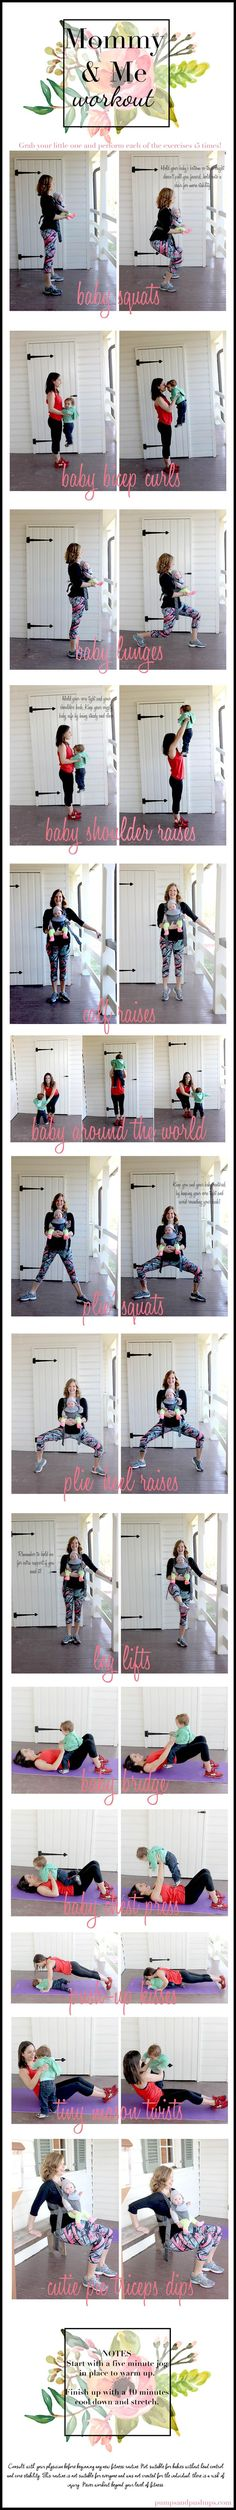 A mommy and me workout from pumps and push-ups.  #hotmamafit